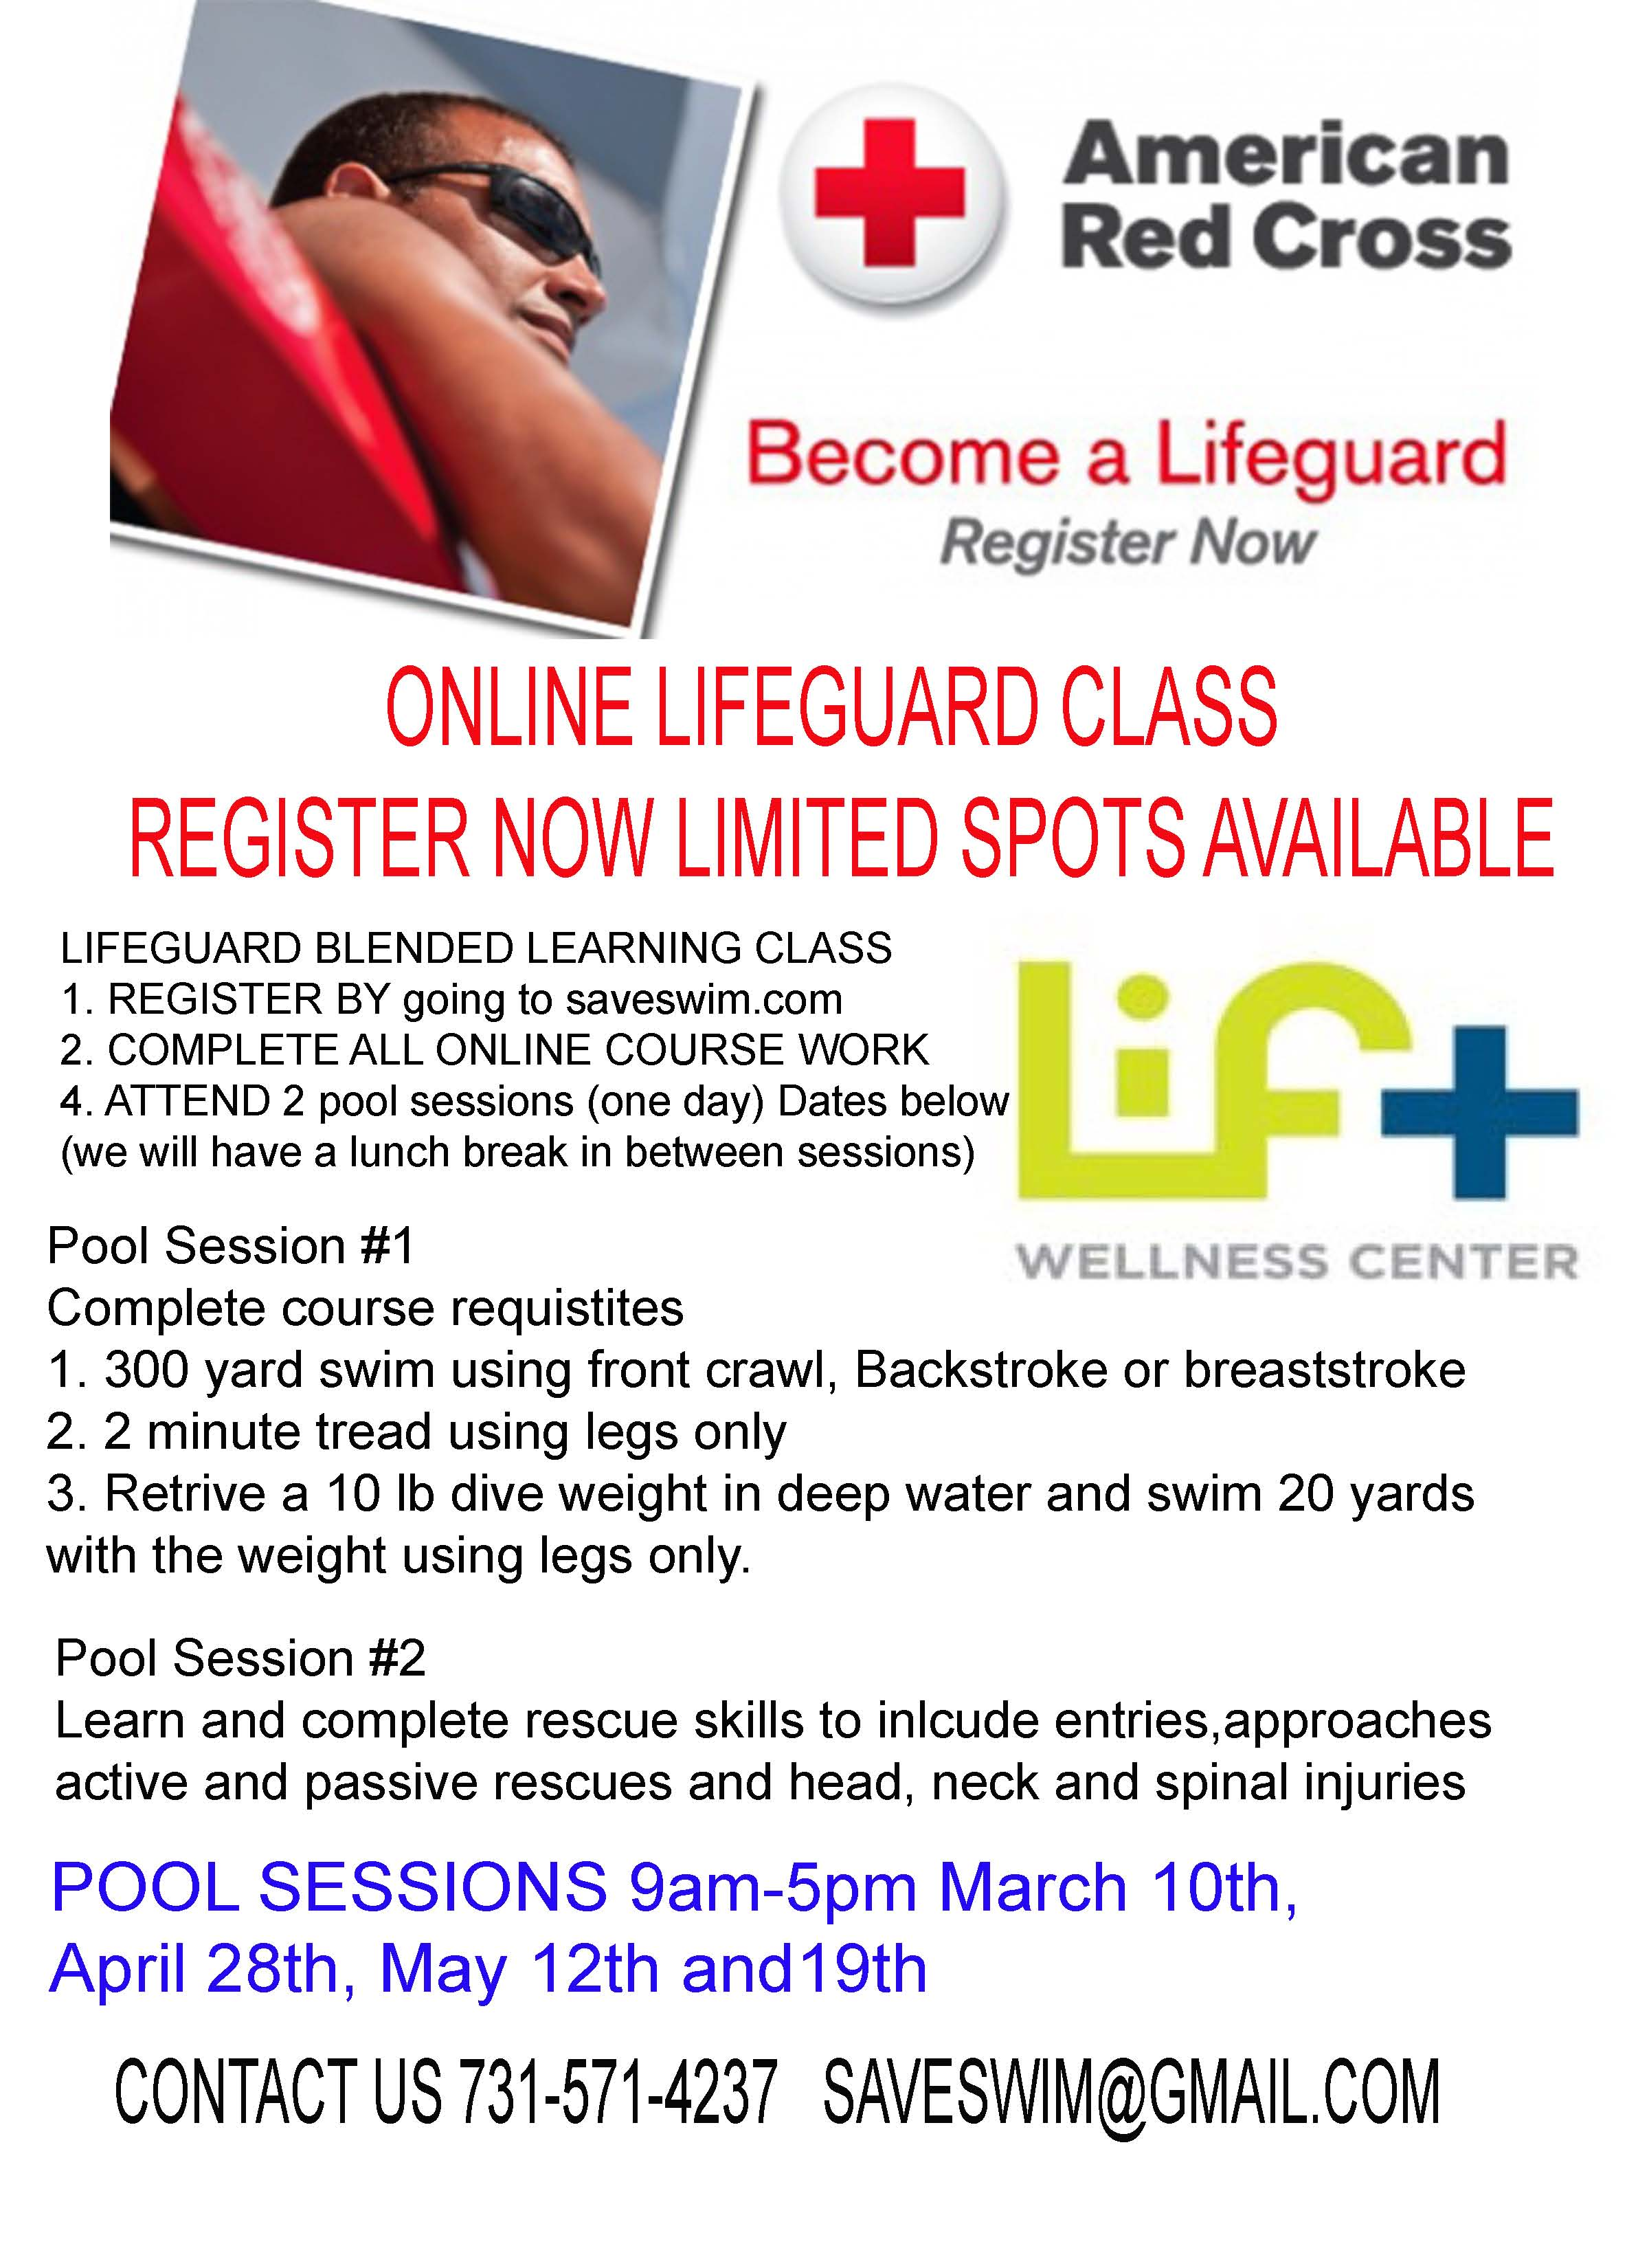 red cross lifeguarding test study guide Description: the american red cross lifeguarding course is designed to teach skills and knowledge to prevent, recognize, and respond to aquatic emergencies and to provide care for breathing and cardiac emergencies, injuries and sudden illnesses until emergency medical services take over.